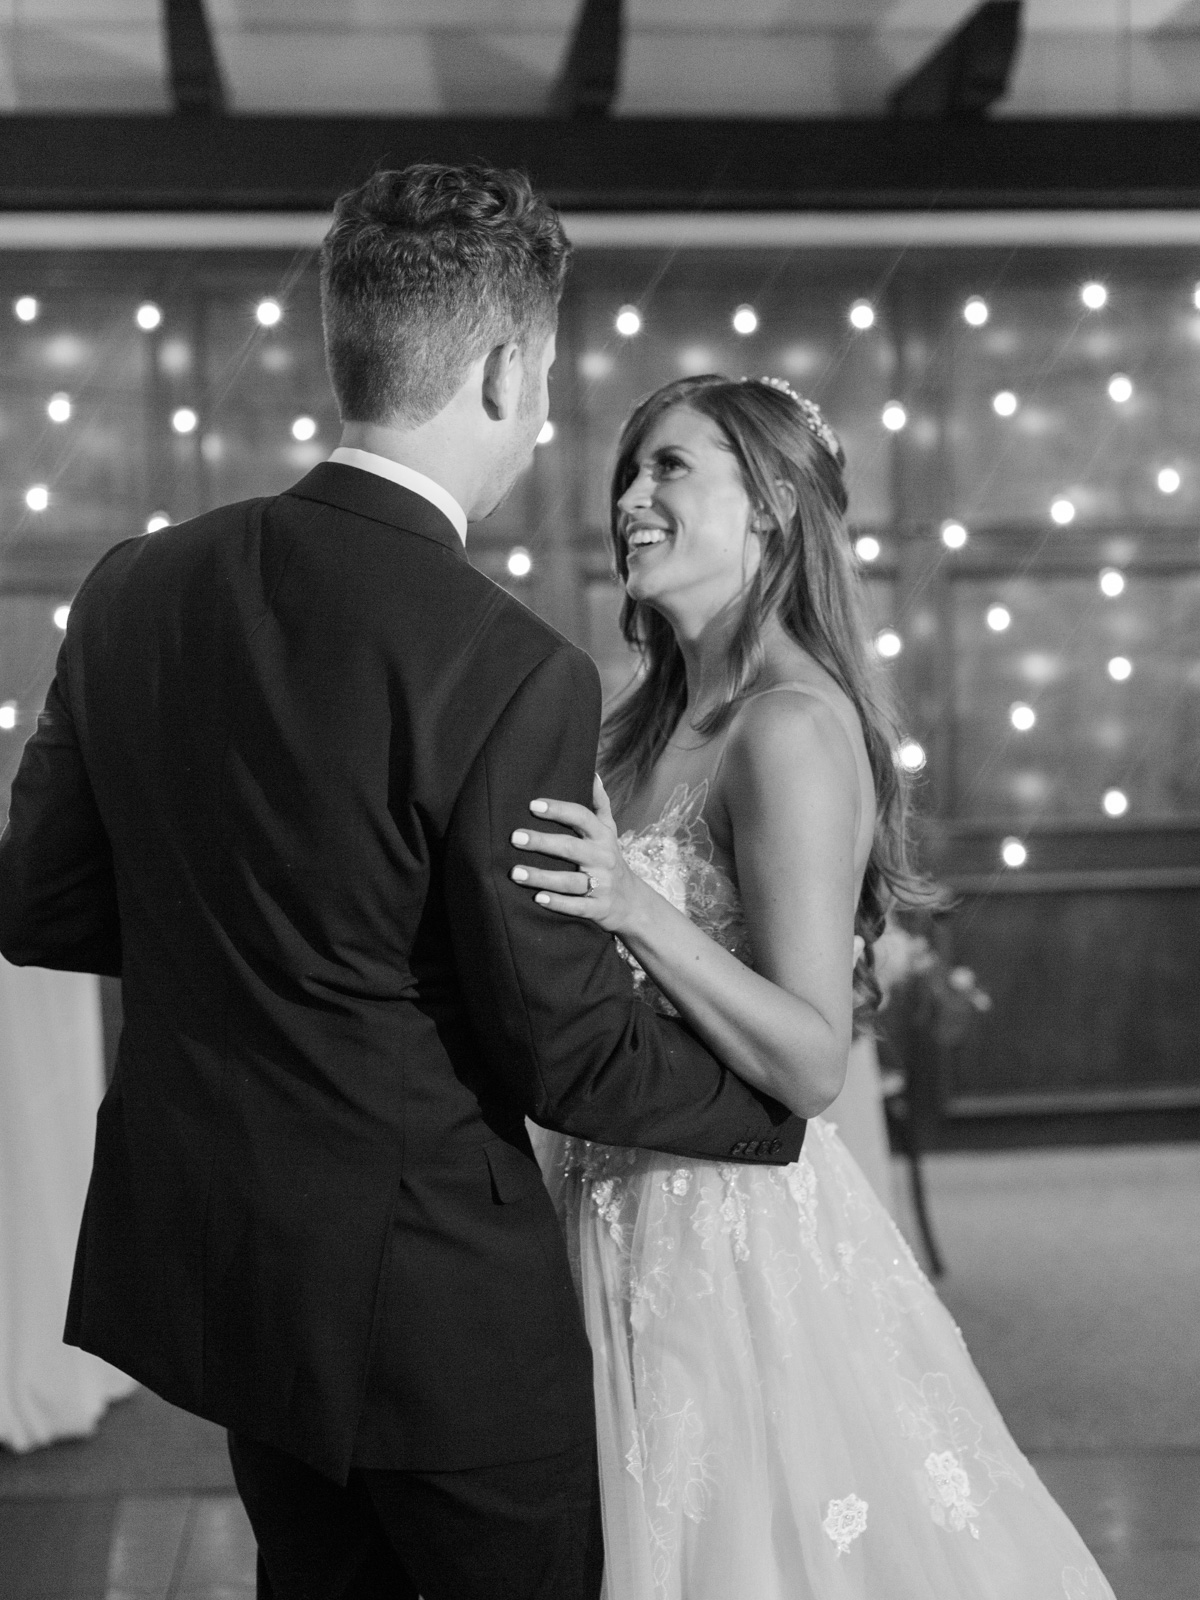 Bride & Groom's first dance|Harrison & Jocelyne's gorgeous Temecula wedding day at Wiens Family Cellars captured by Temecula wedding photographers Betsy & John